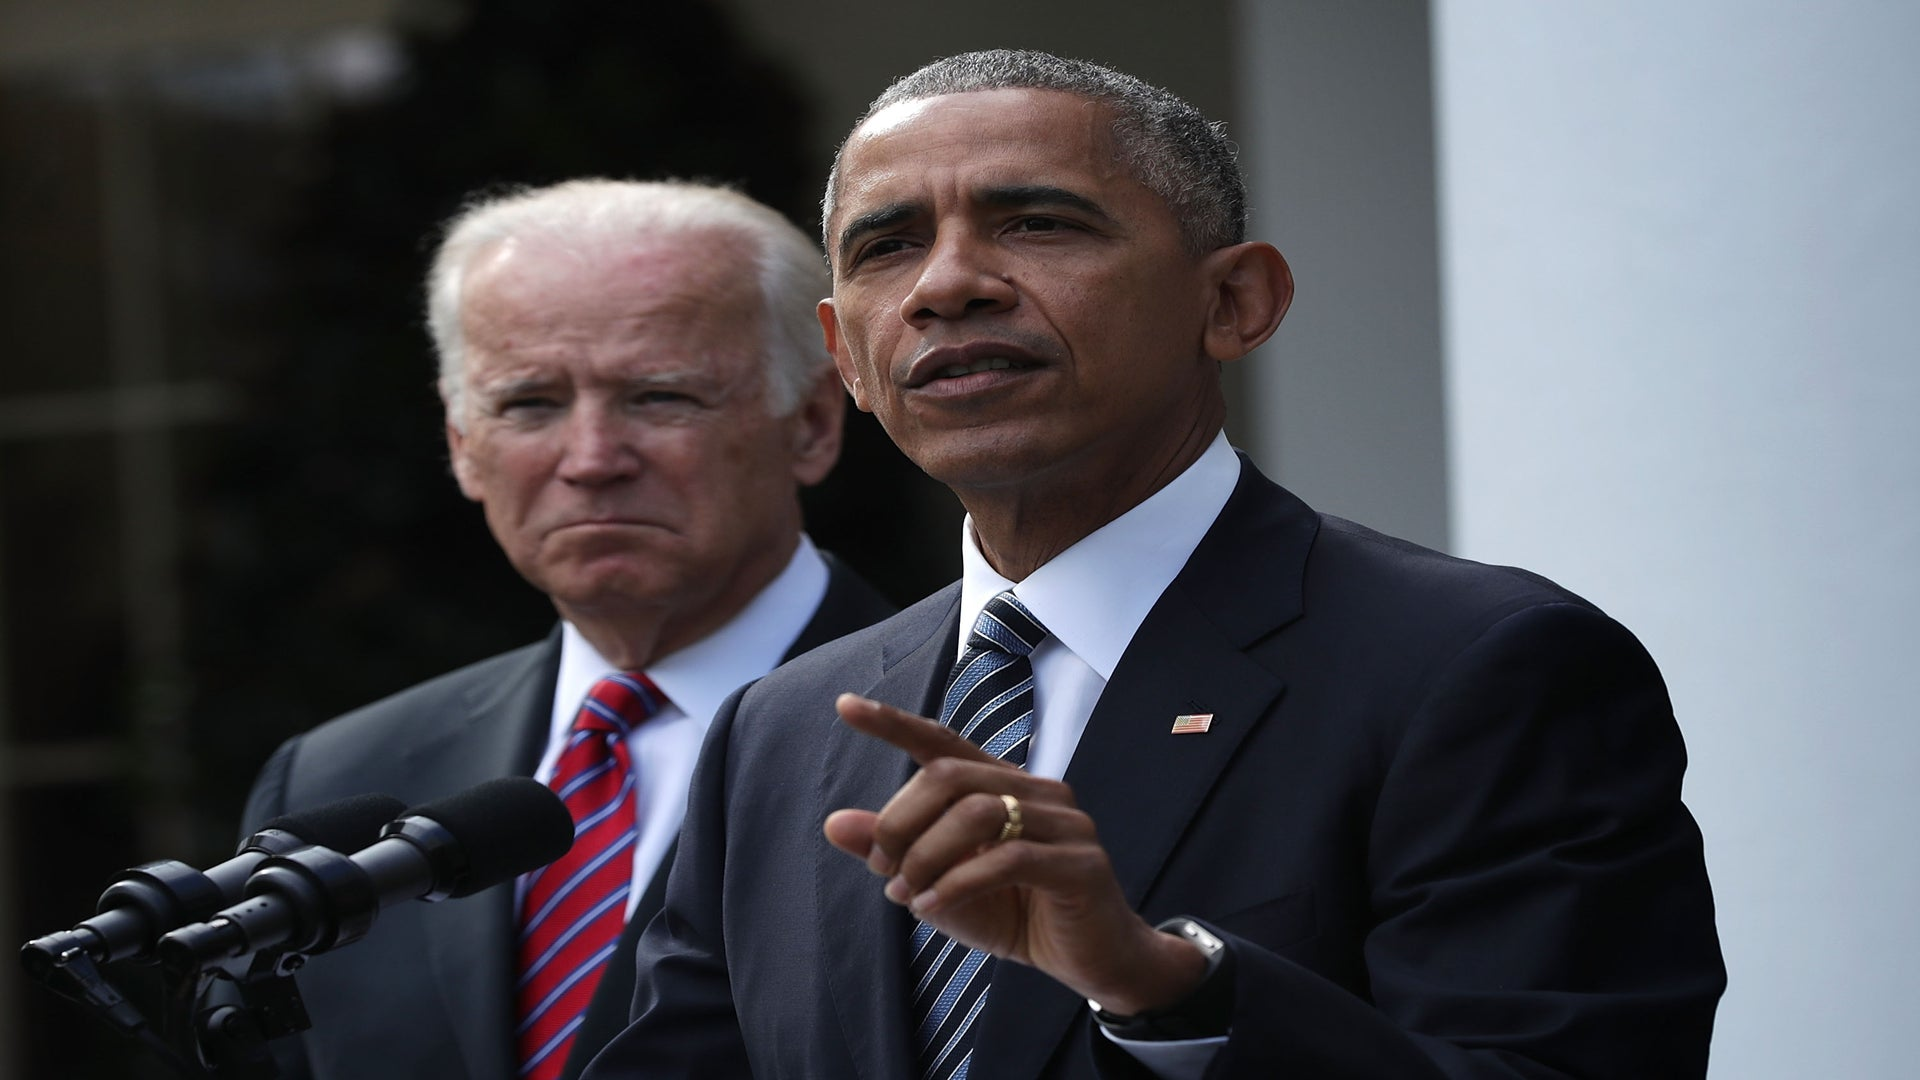 President Obama calls for unity after divisive election